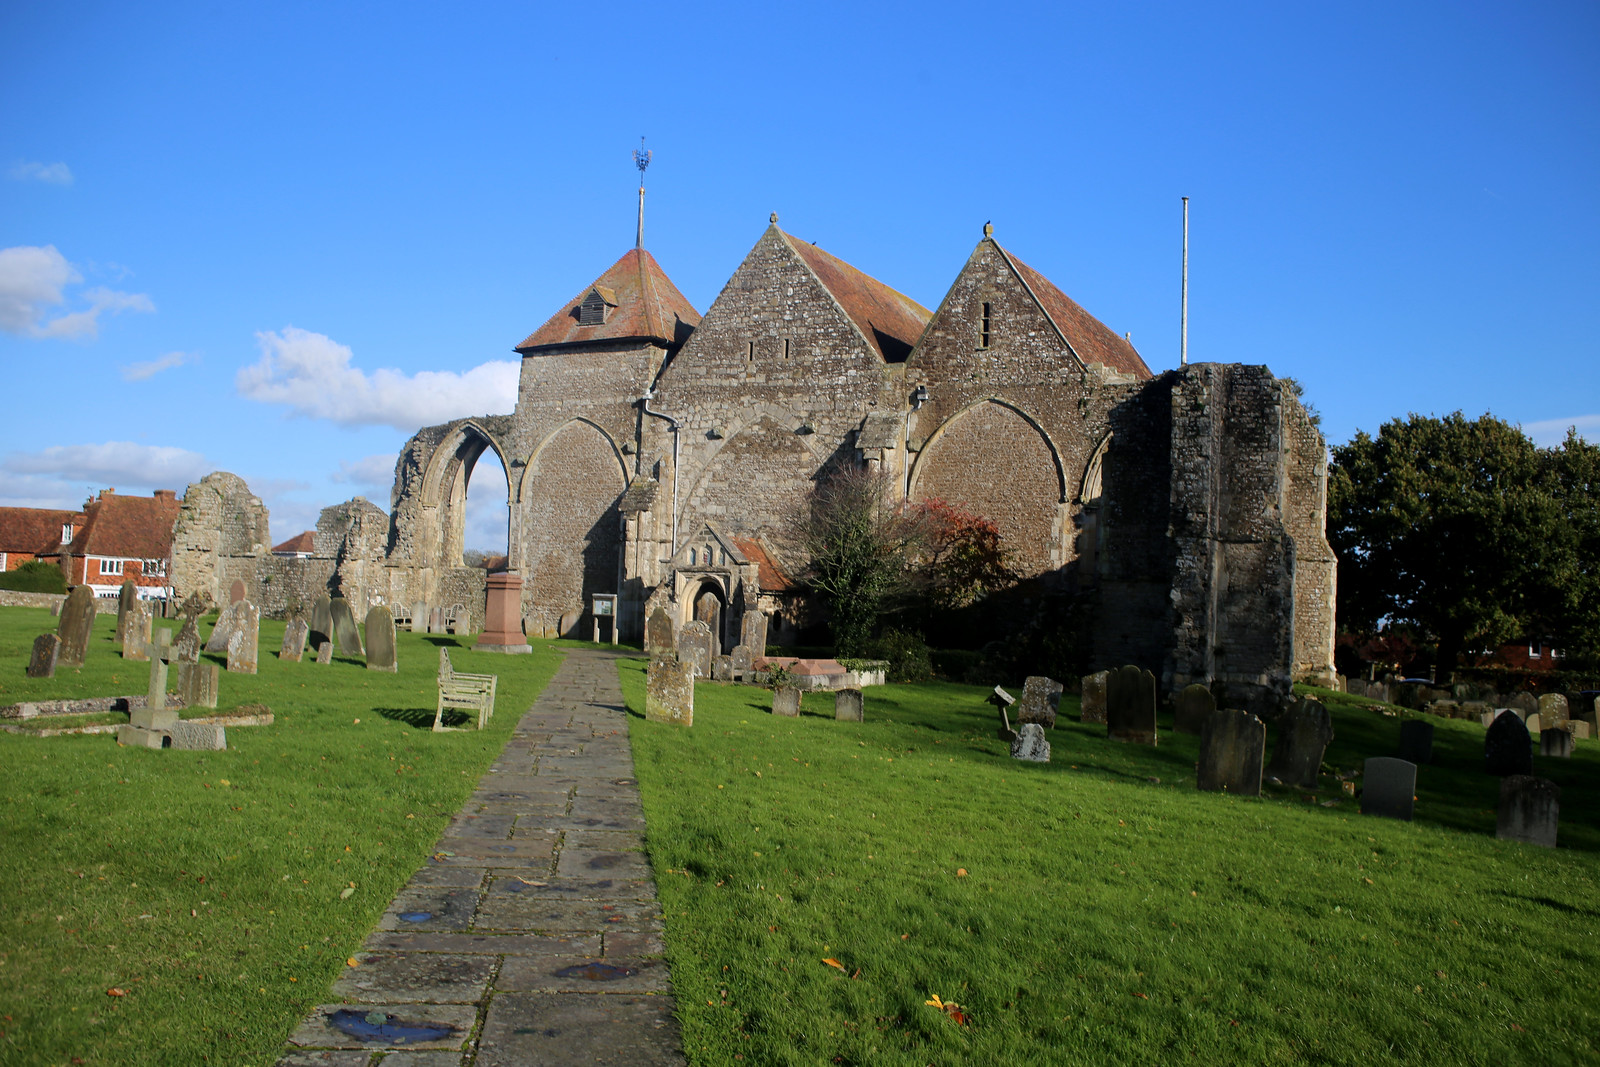 St Thomas' Church, Winchelsea